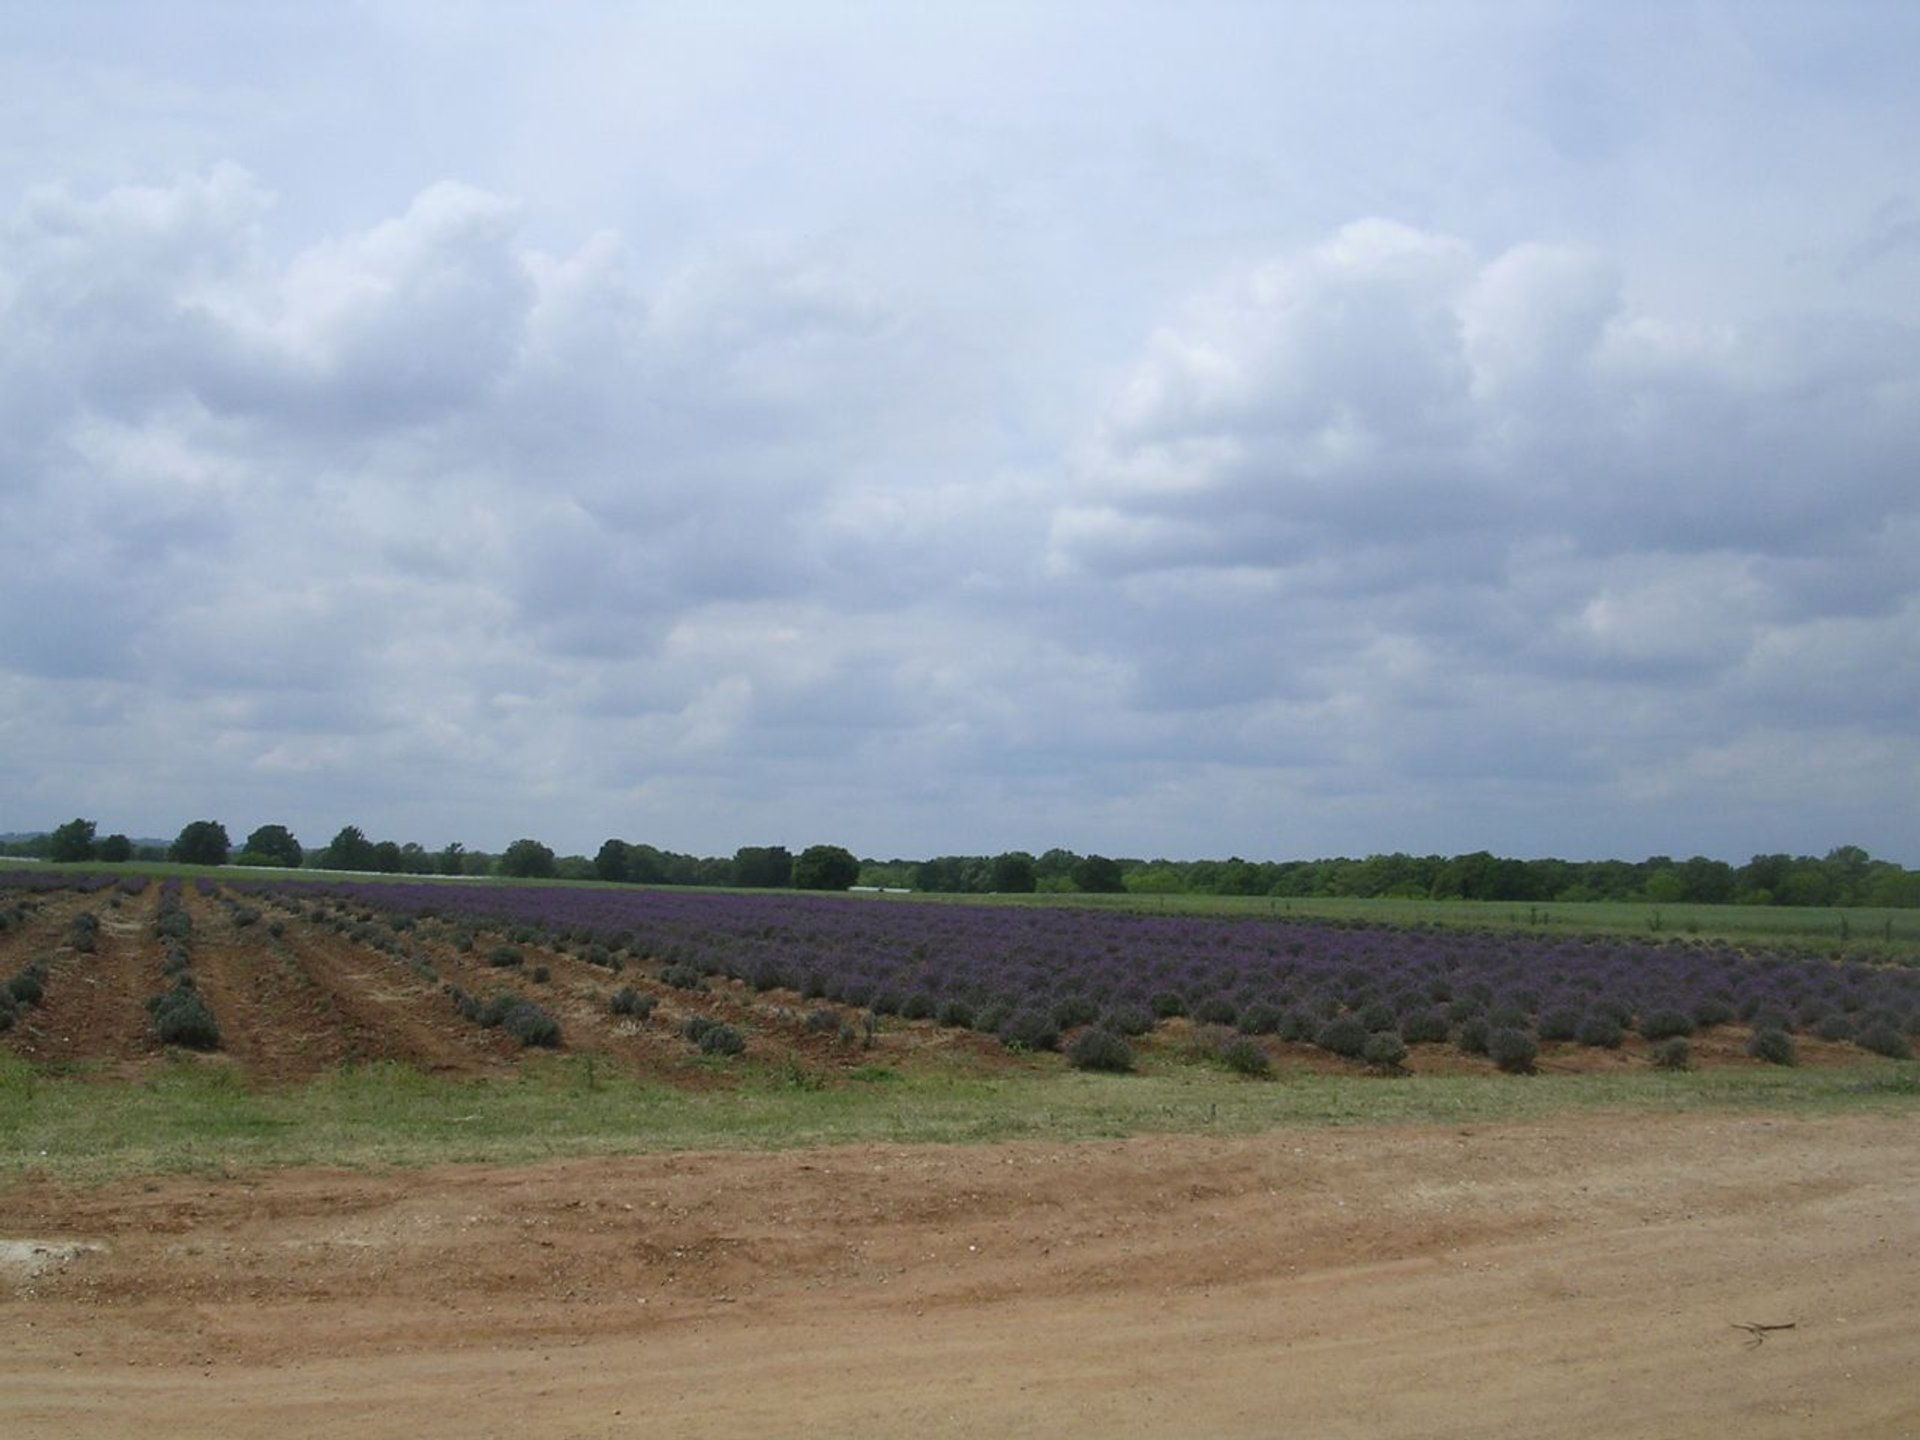 Becker Vineyards Lavender Fields 2020